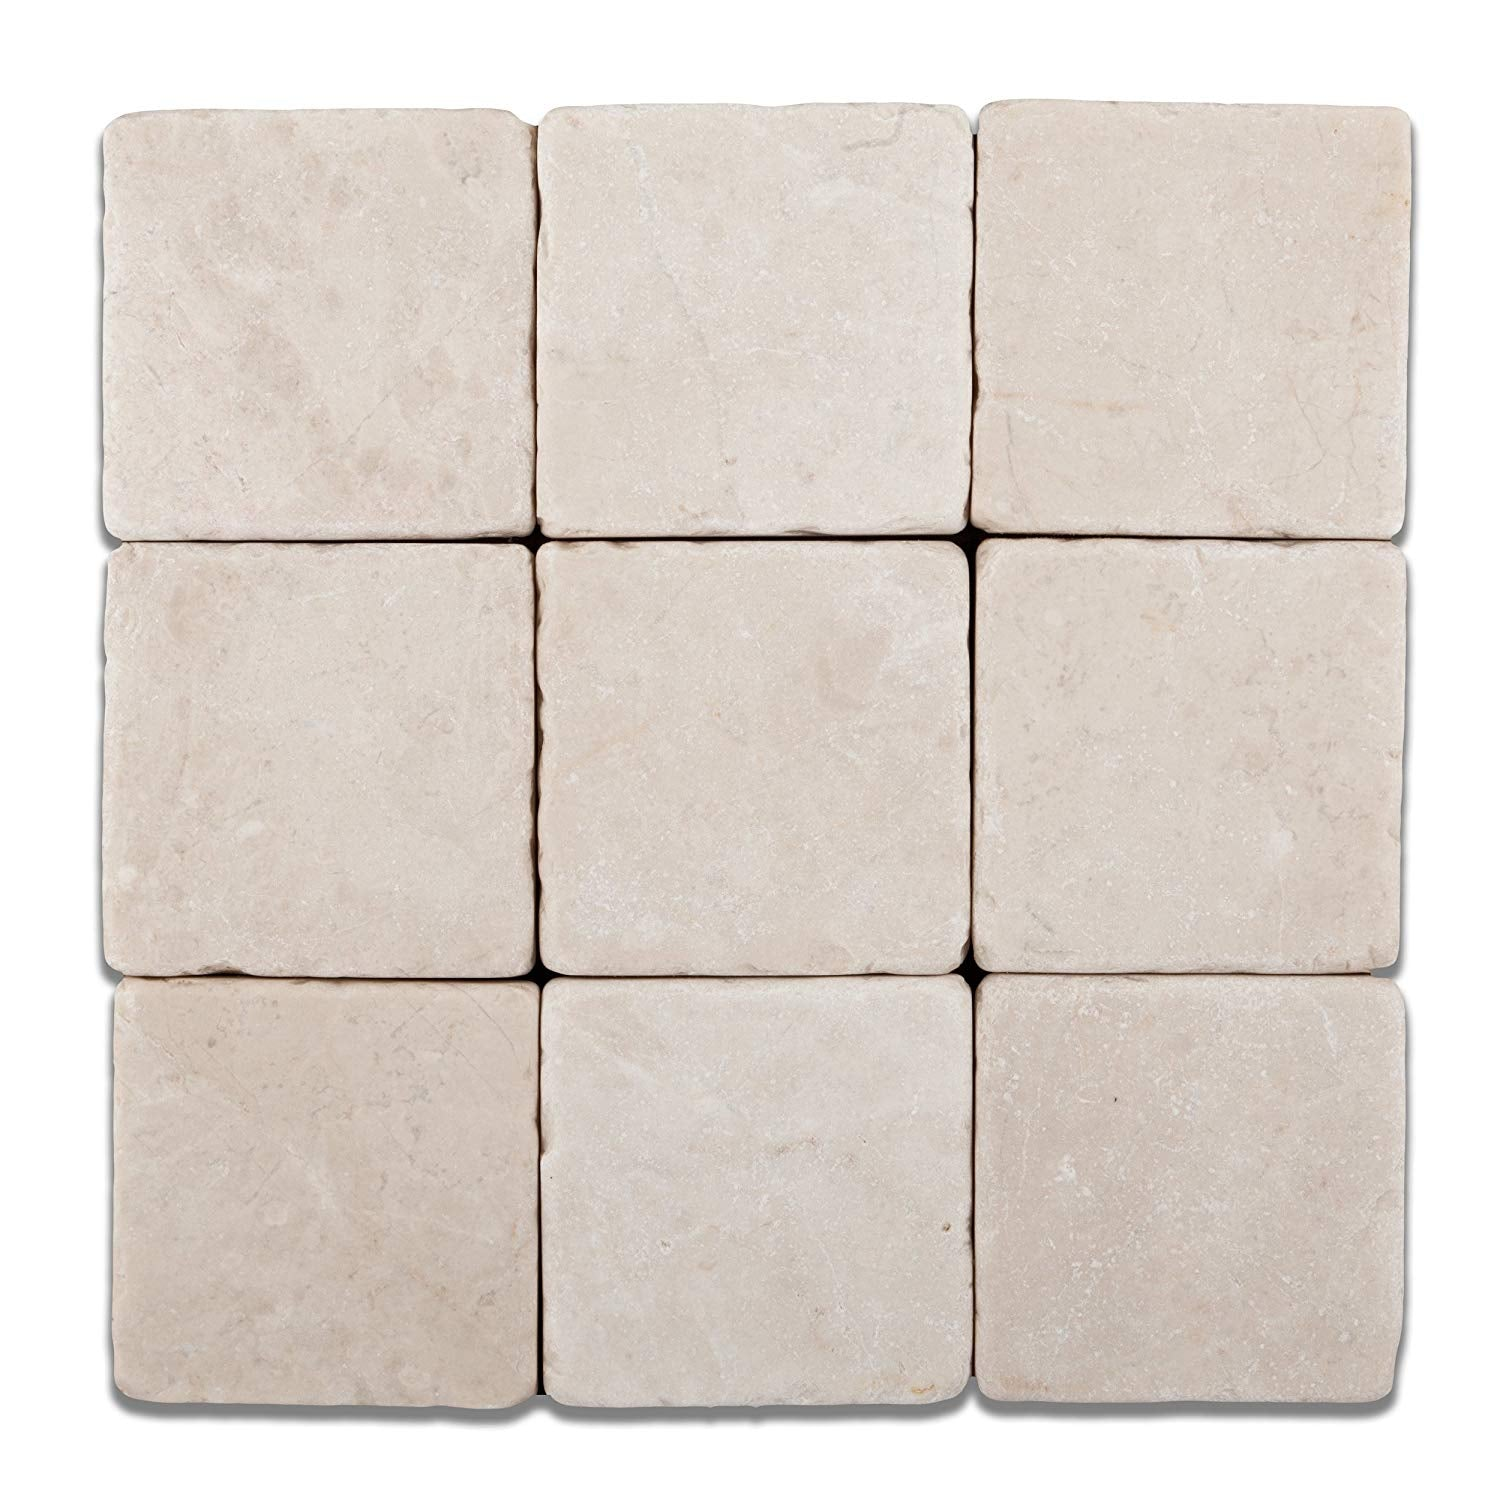 Turkish Crema Marfil Marble 4 X 4 Tumbled Field Tile -